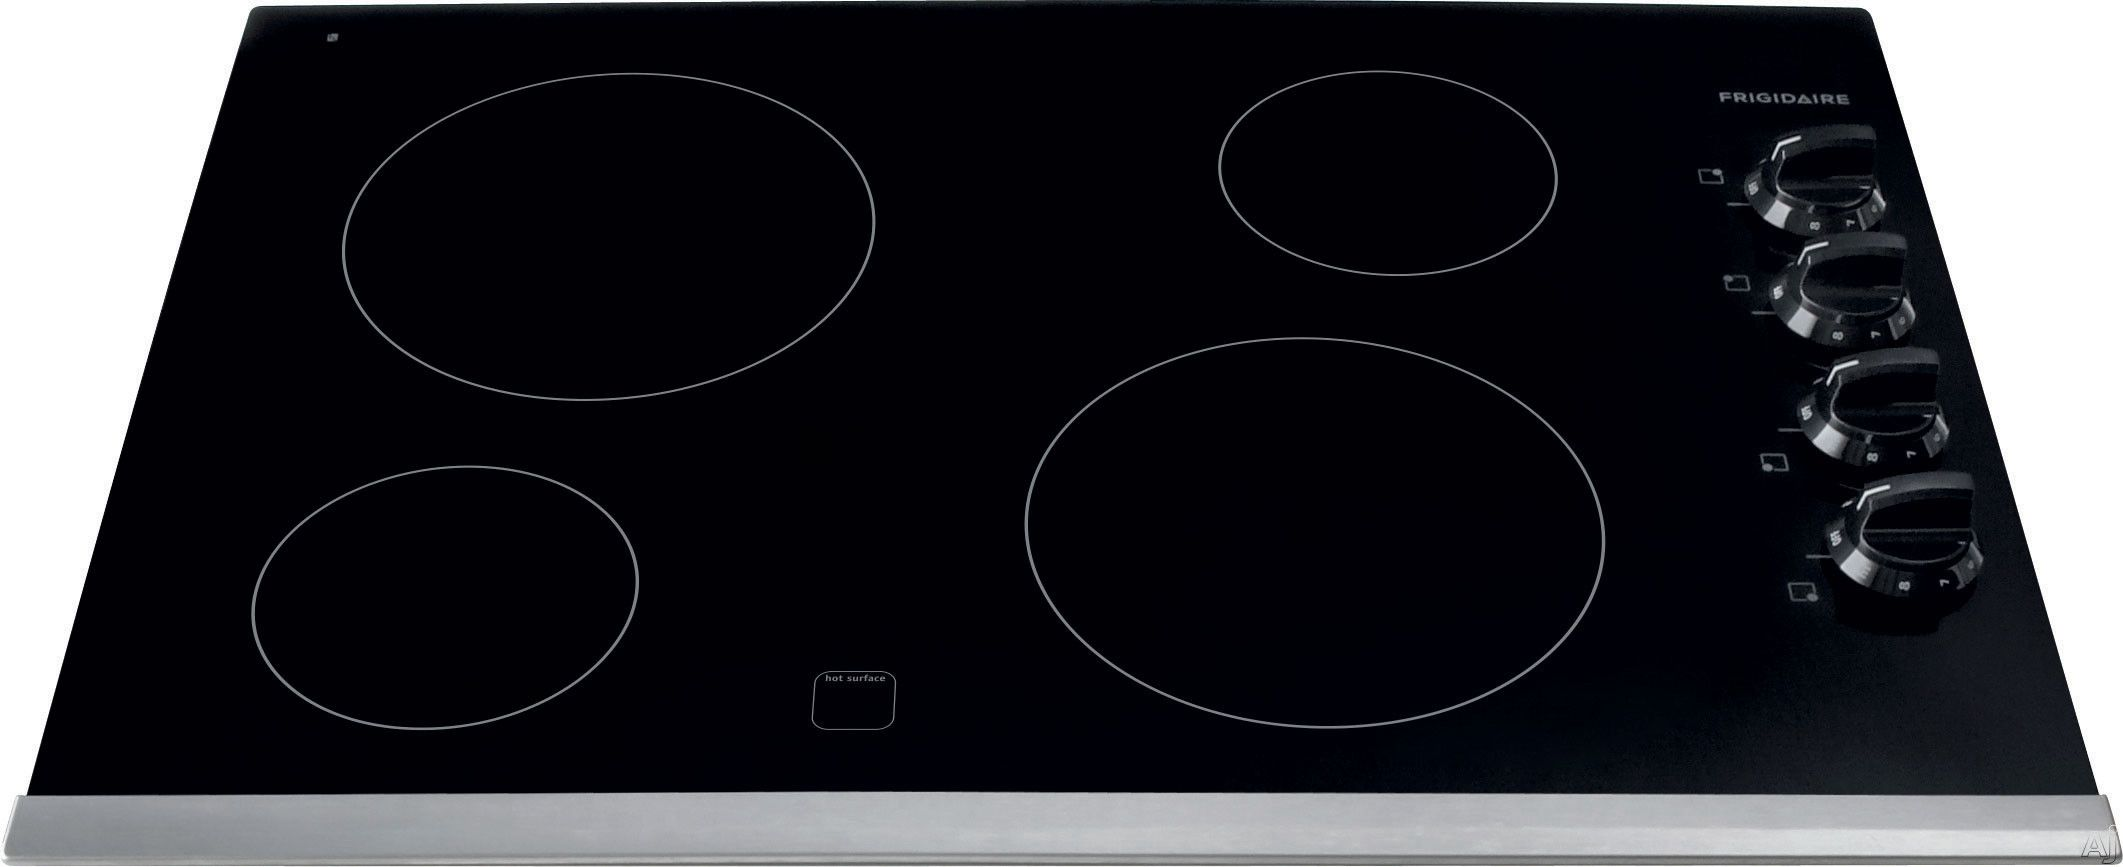 Frigidaire Ffec3024ps 30 Inch Electric Cooktop With 4 Elements Ceramic Glass Surface 2500w Element Hot Surface Indicator Ready Select Controls Color Coord Electric Cooktop Cooktop Cool Things To Buy